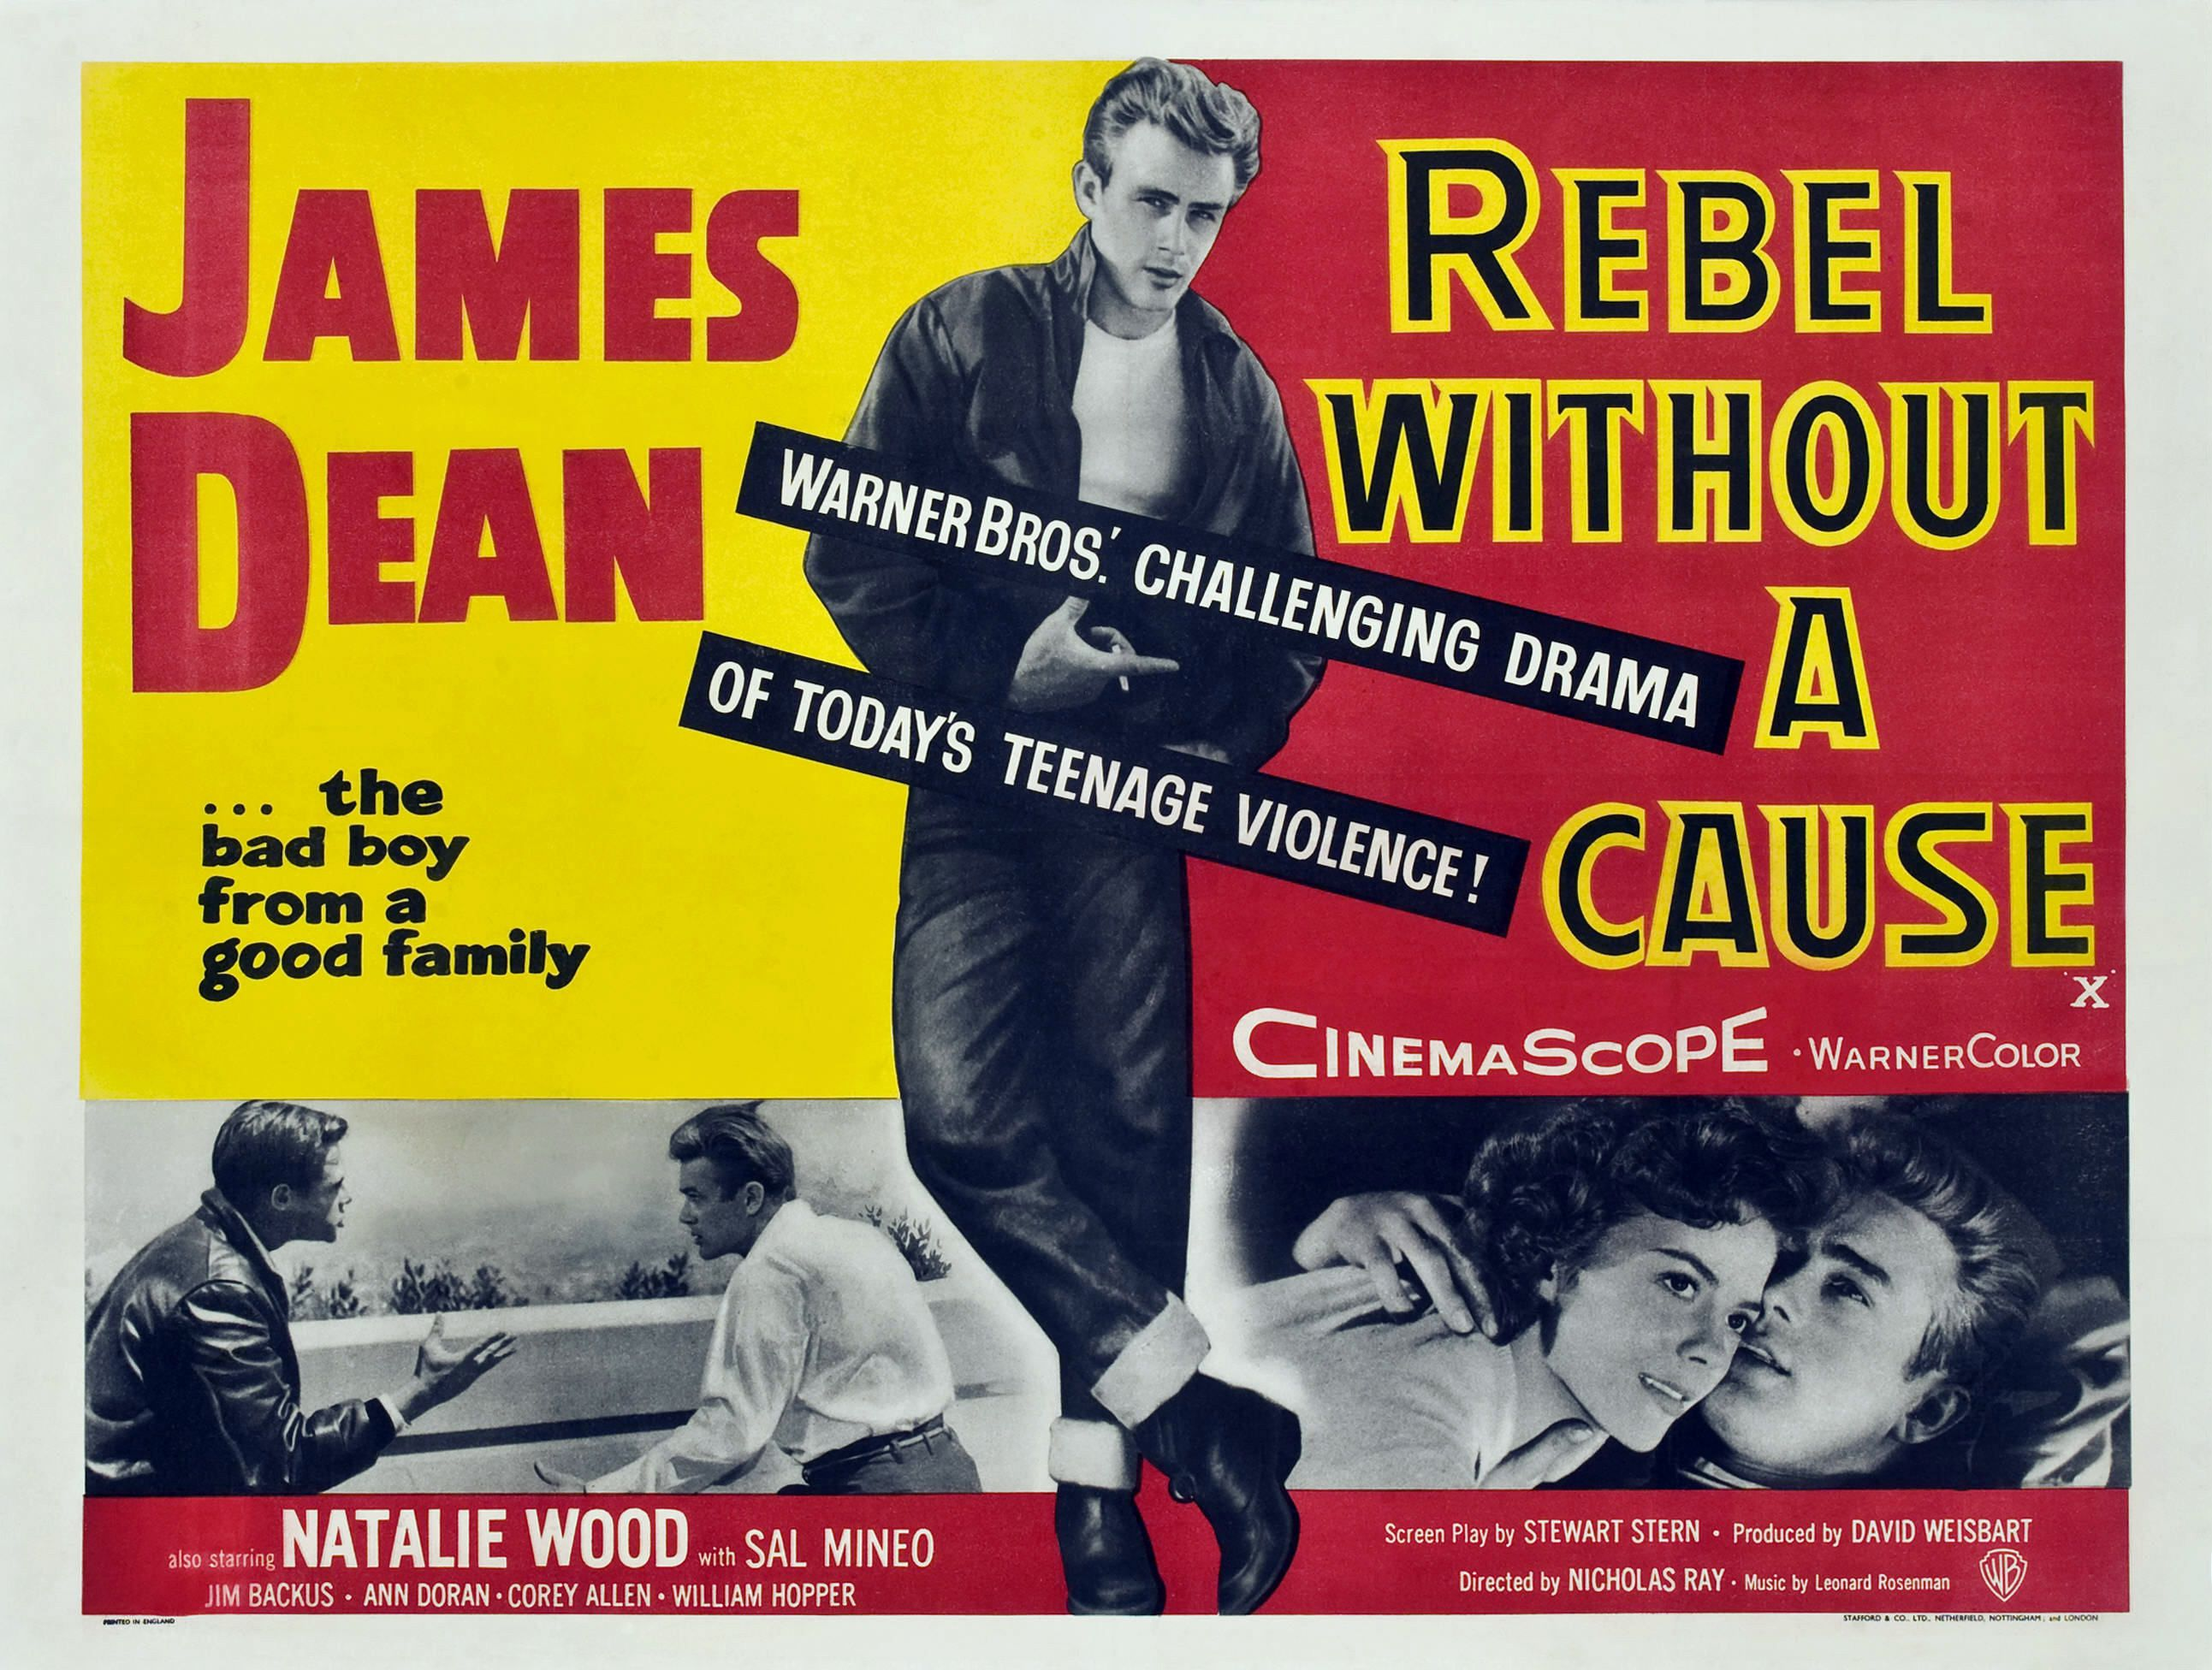 Rebel Without a Cause vintage movie poster